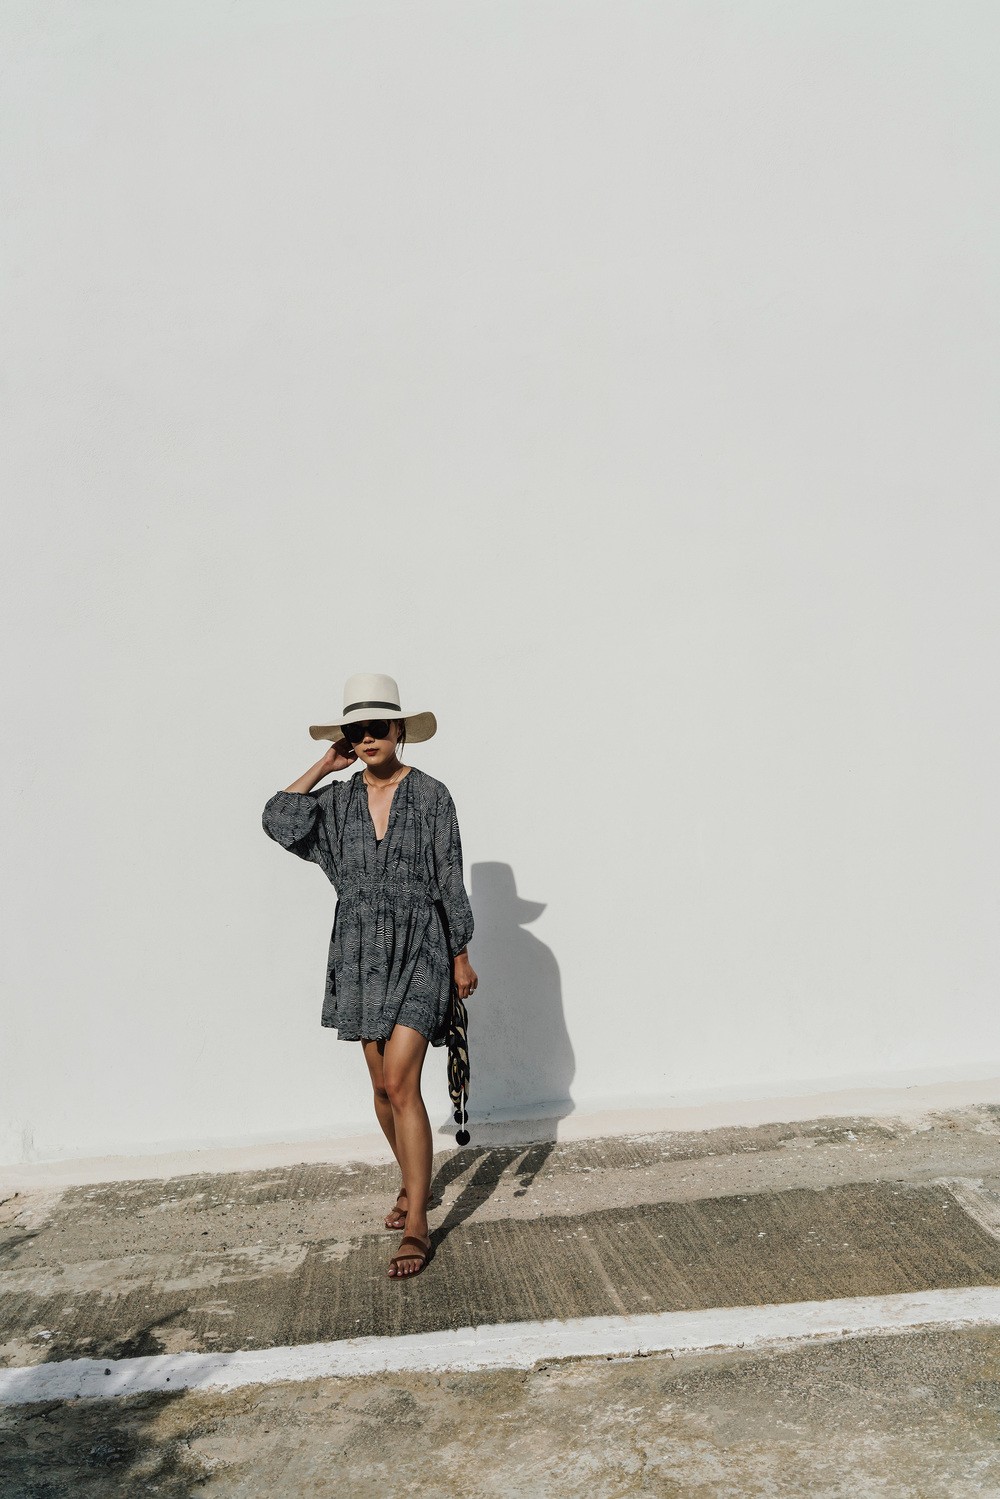 Apiece Apart Dress, Sophie Anderson Bag, Janessa Leone Hat, Manolo Blahnik Sandals, Fendi Sunglasses, Jennie Kwon Choker